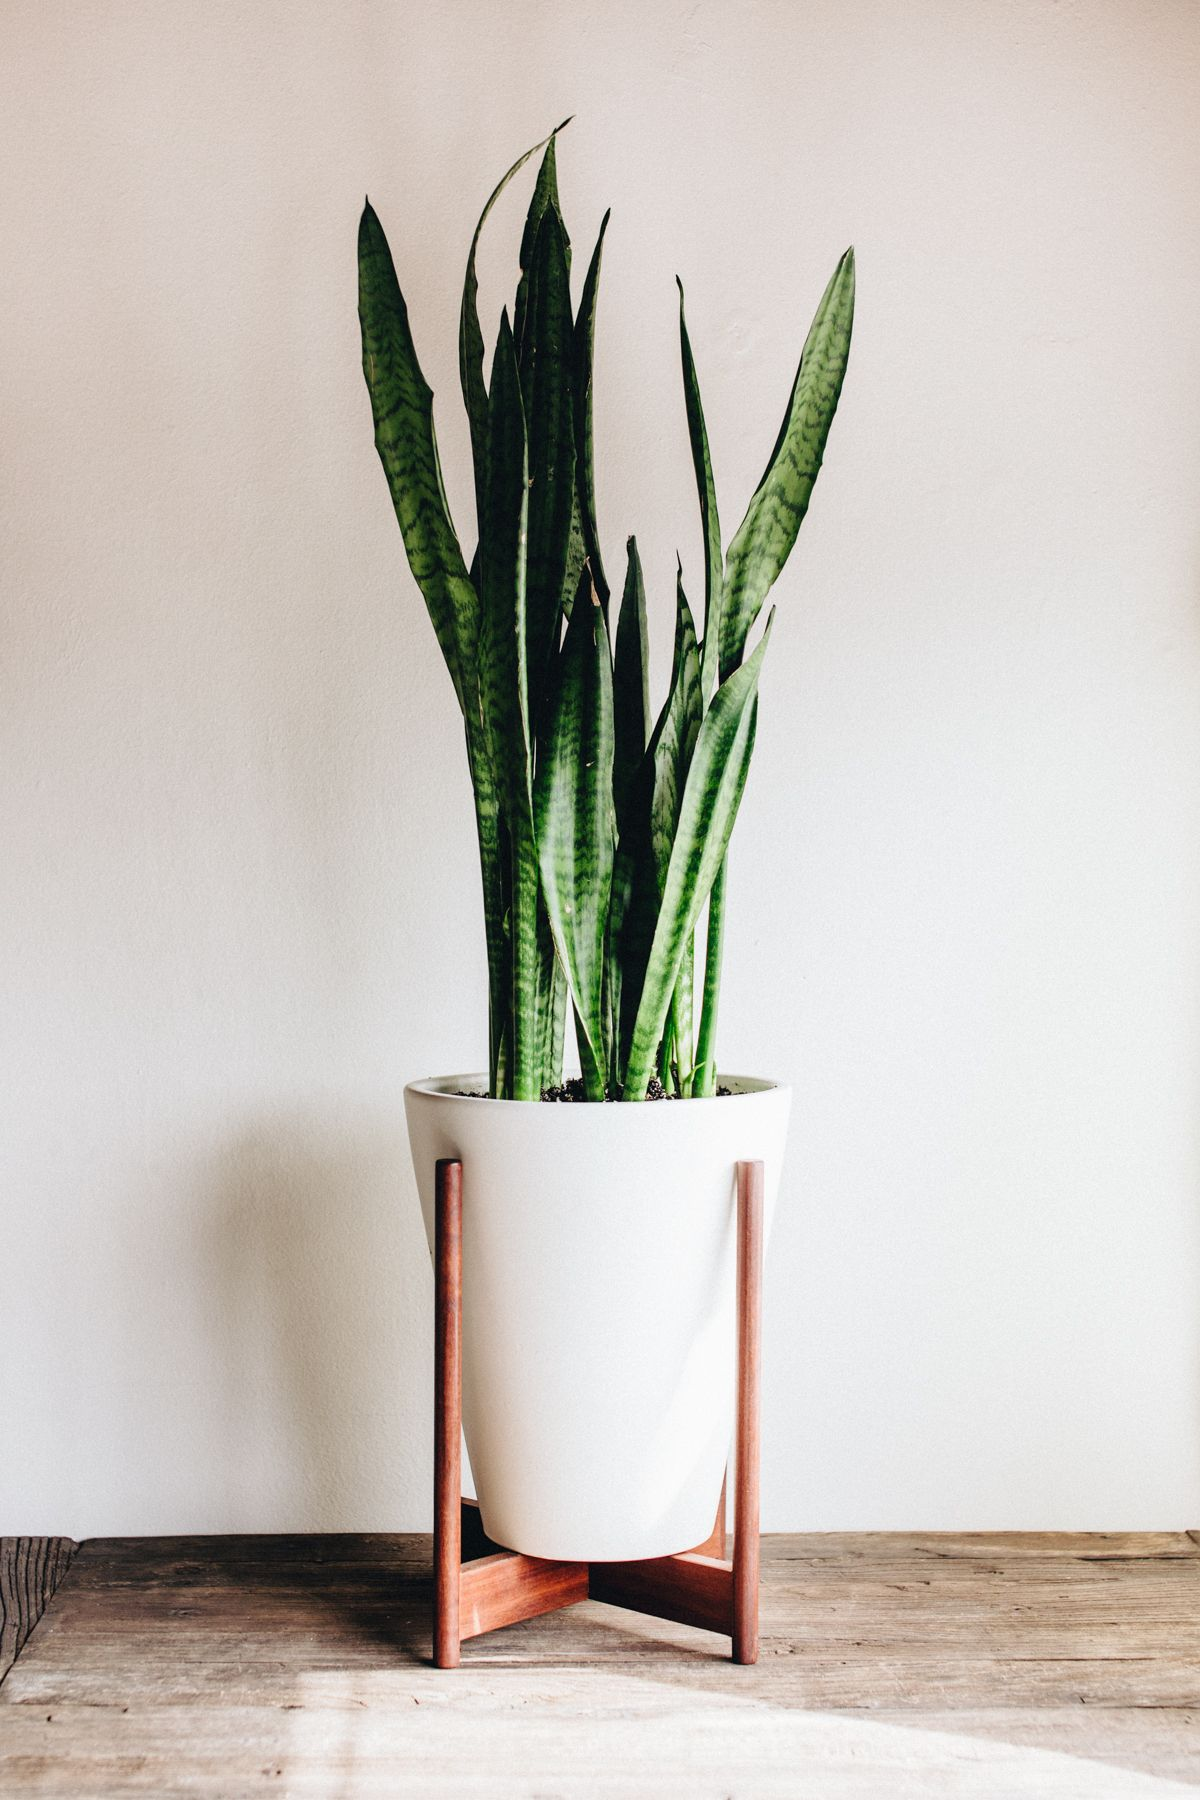 Pin by Modernica on Case Study Ceramics | Indoor plants ...